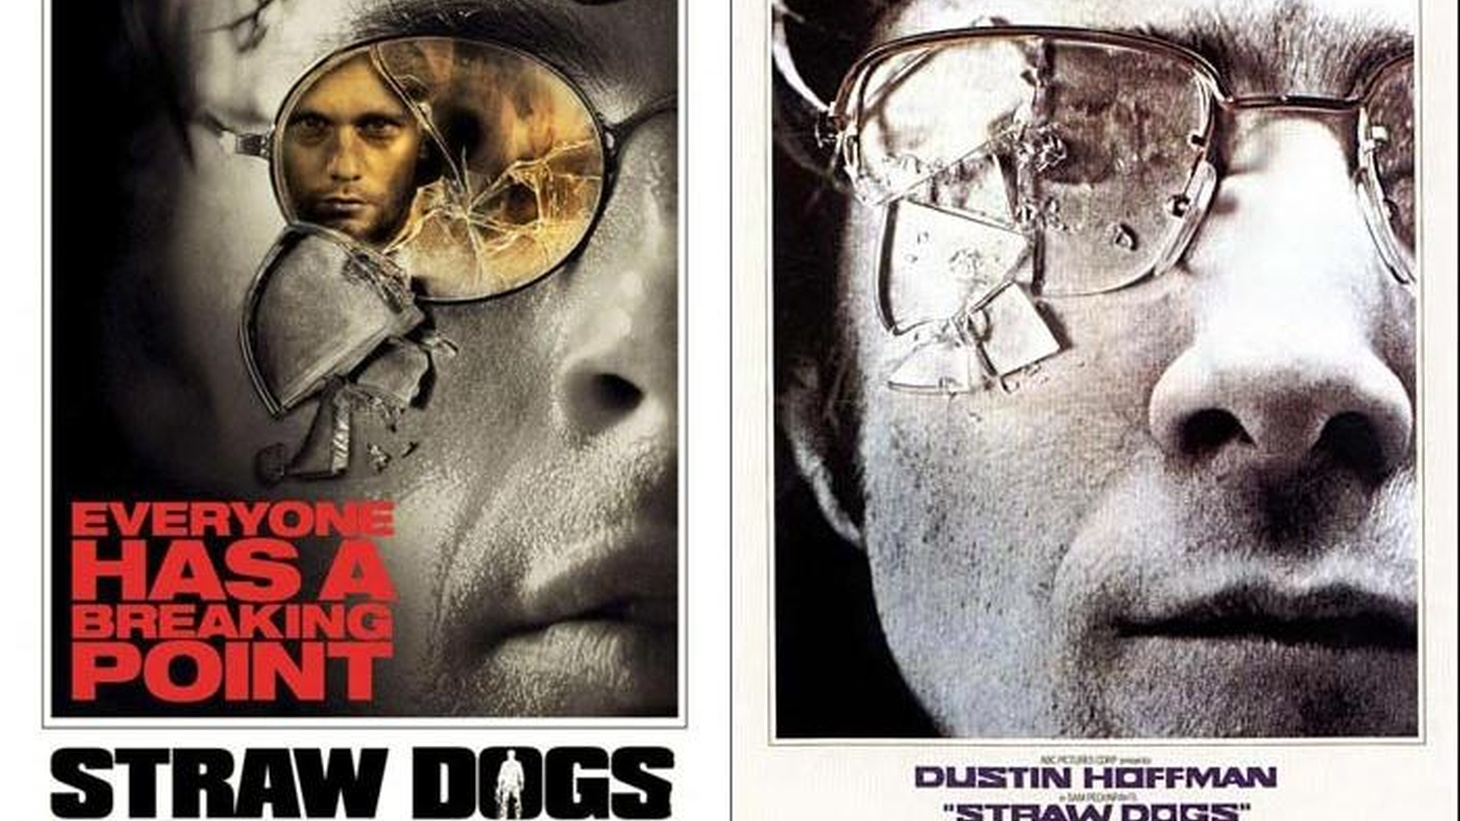 Director Rod Lurie on remaking Straw Dogs. Plus, Columbia University's Dr. W. Ian Lipkin talks about consulting on the Soderbergh pandemic thriller, Contagion.